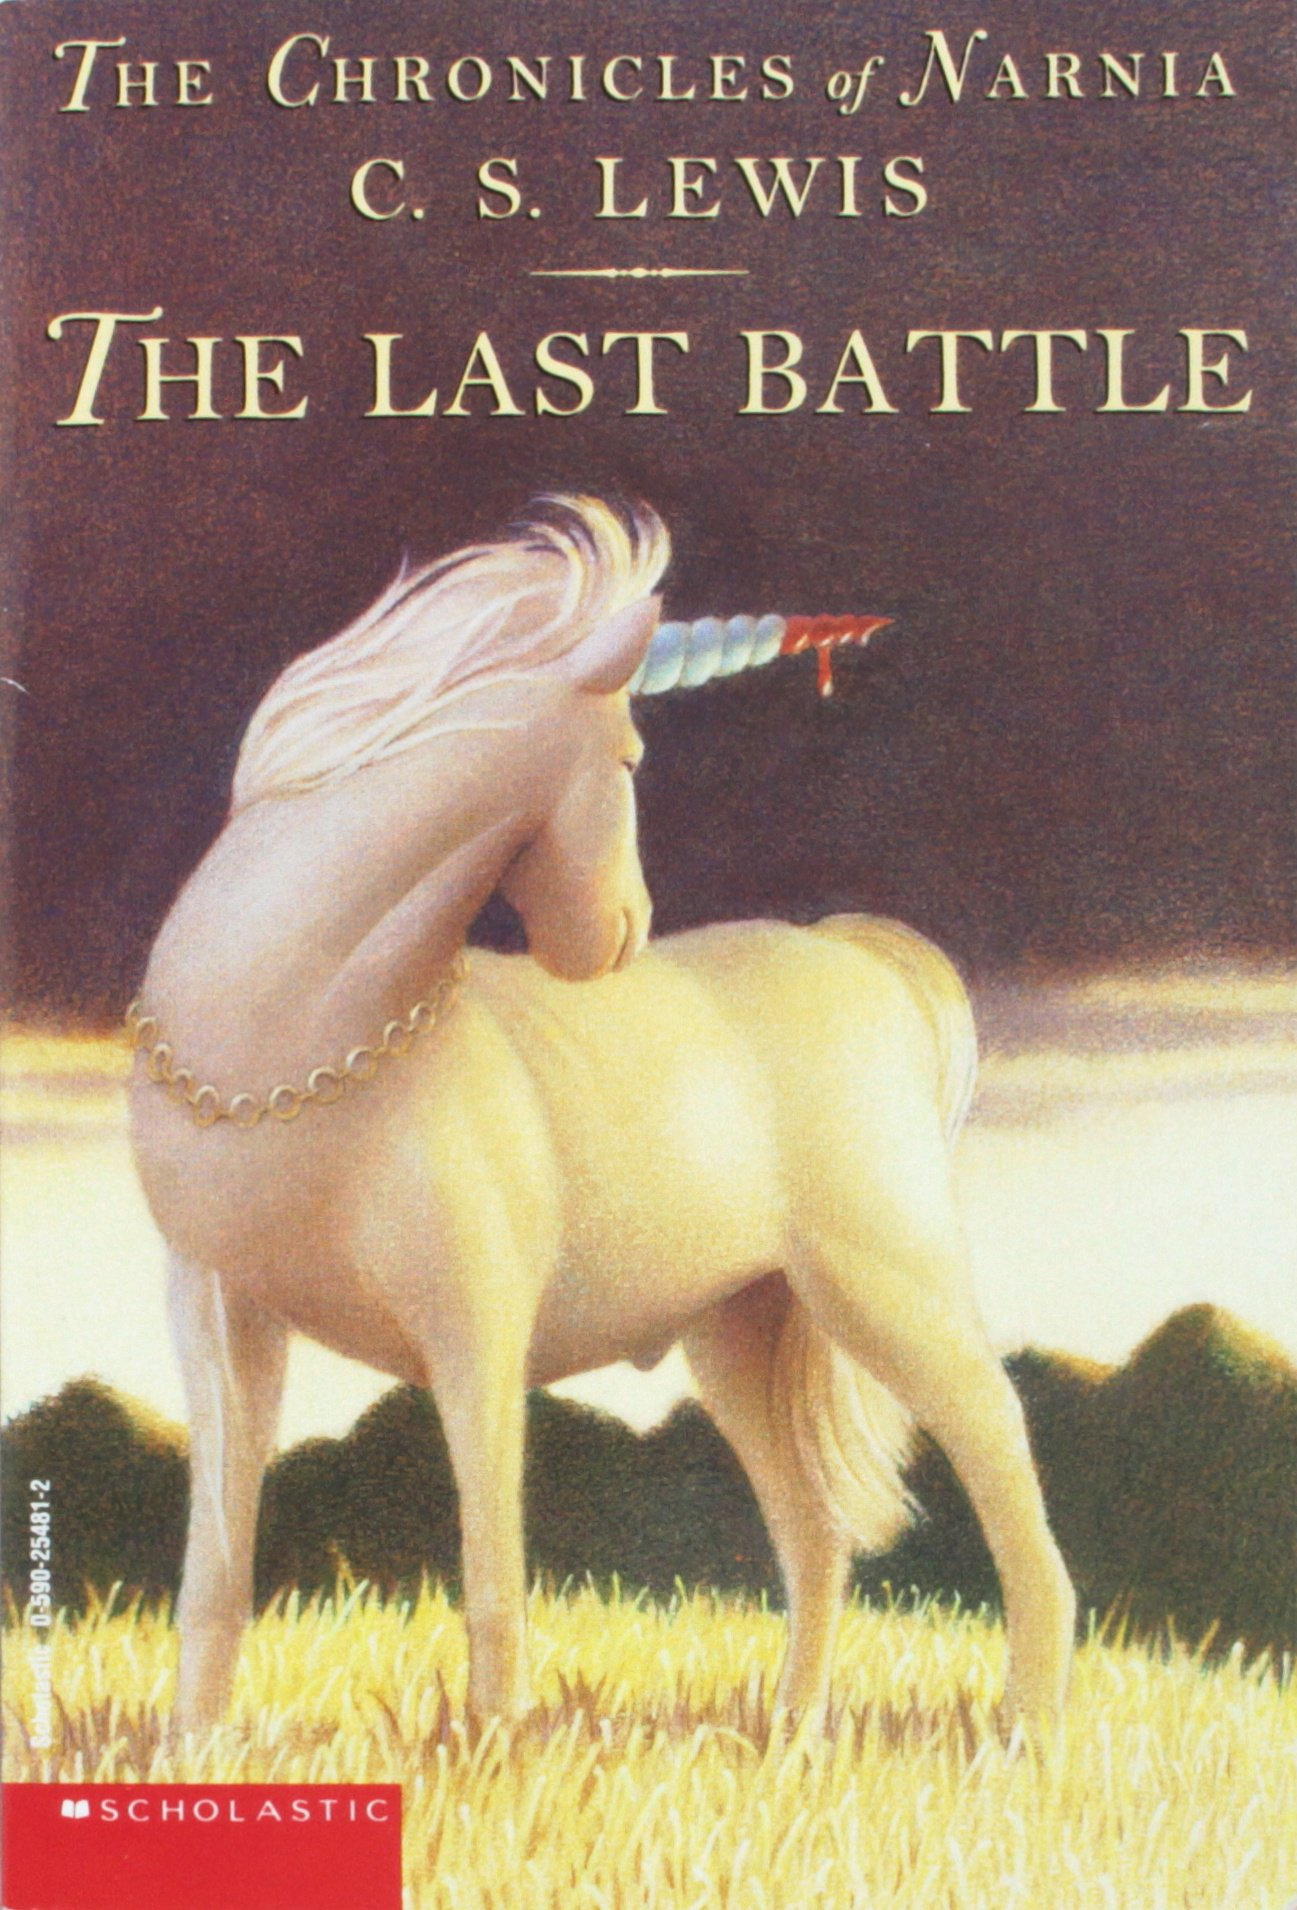 the last battle the chronicles of narnia book 7 c s lewis